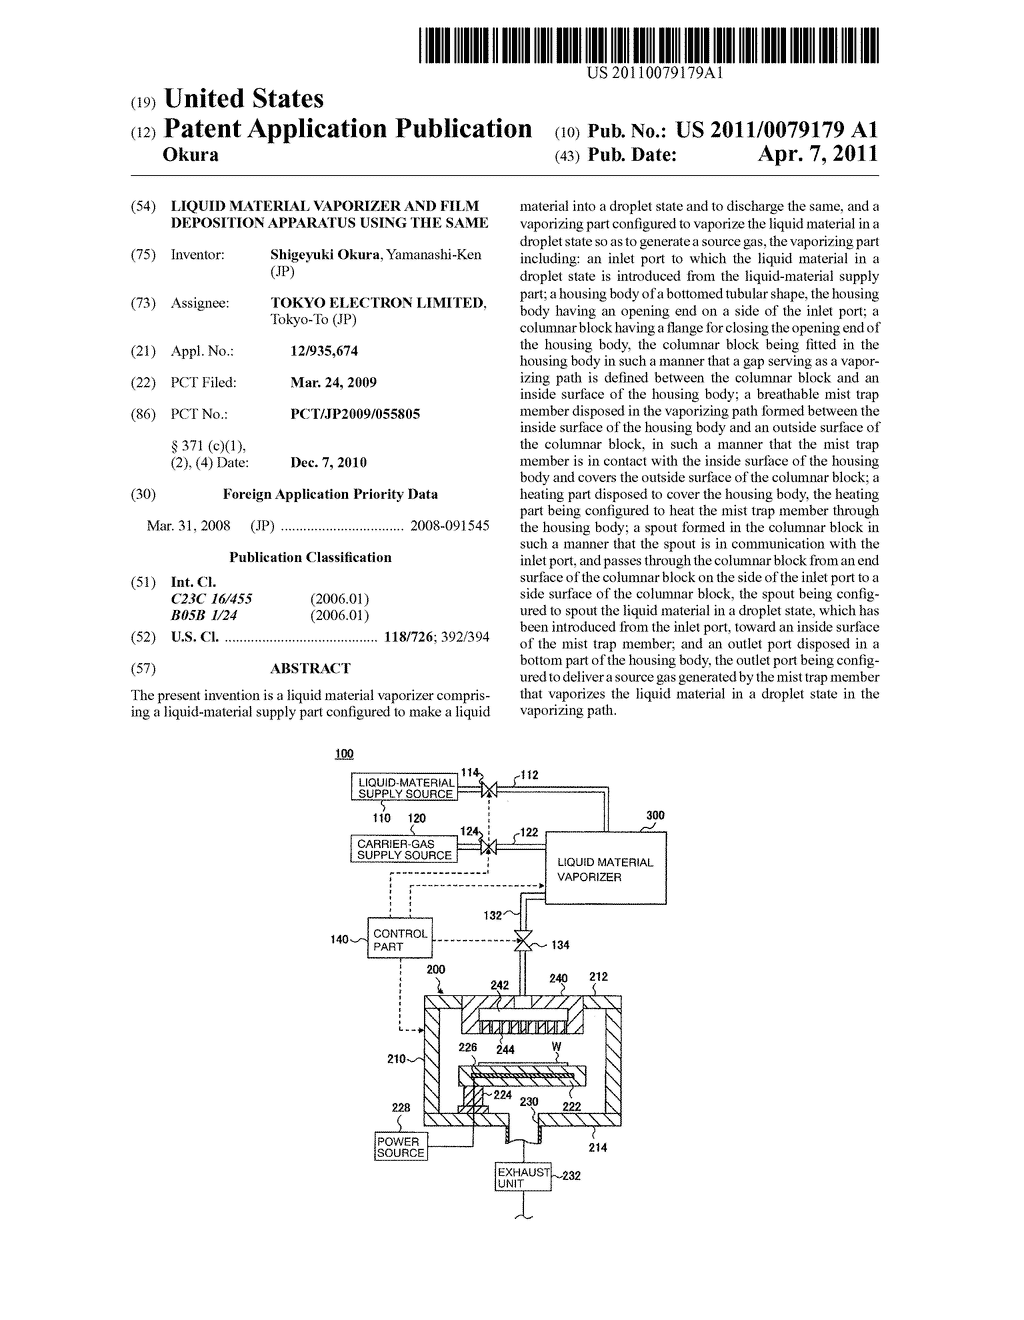 LIQUID MATERIAL VAPORIZER AND FILM DEPOSITION APPARATUS USING THE SAME - diagram, schematic, and image 01